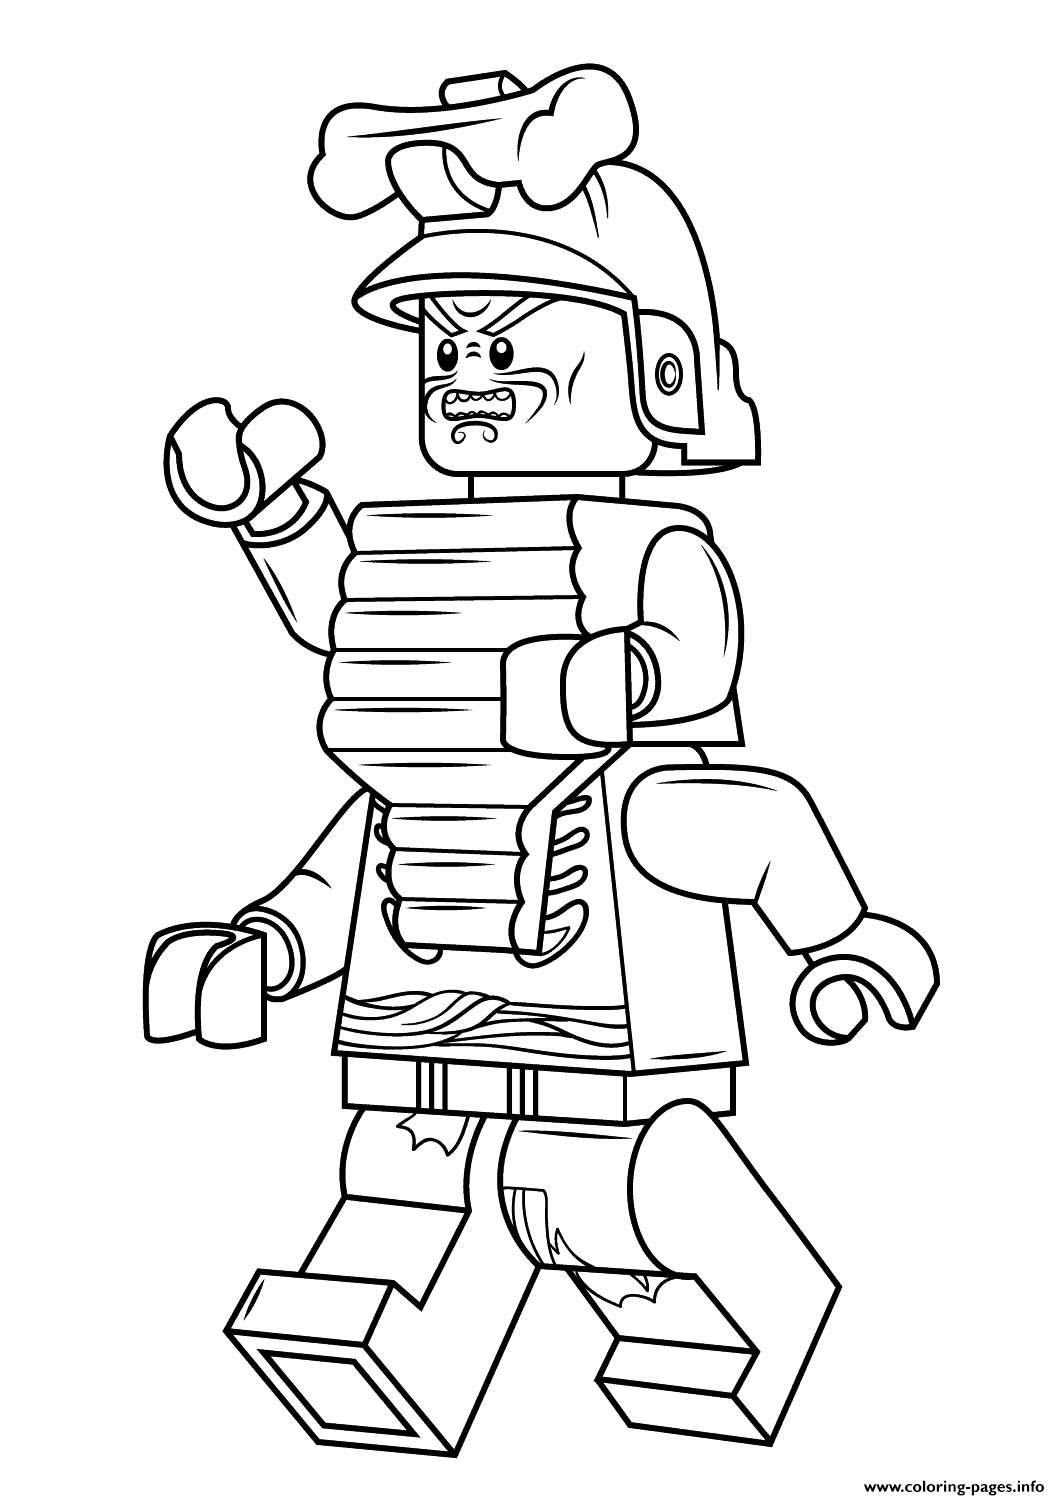 photo regarding Printable Lego Coloring Pages referred to as Print lego ninjago lord garmadon coloring webpages Xmas